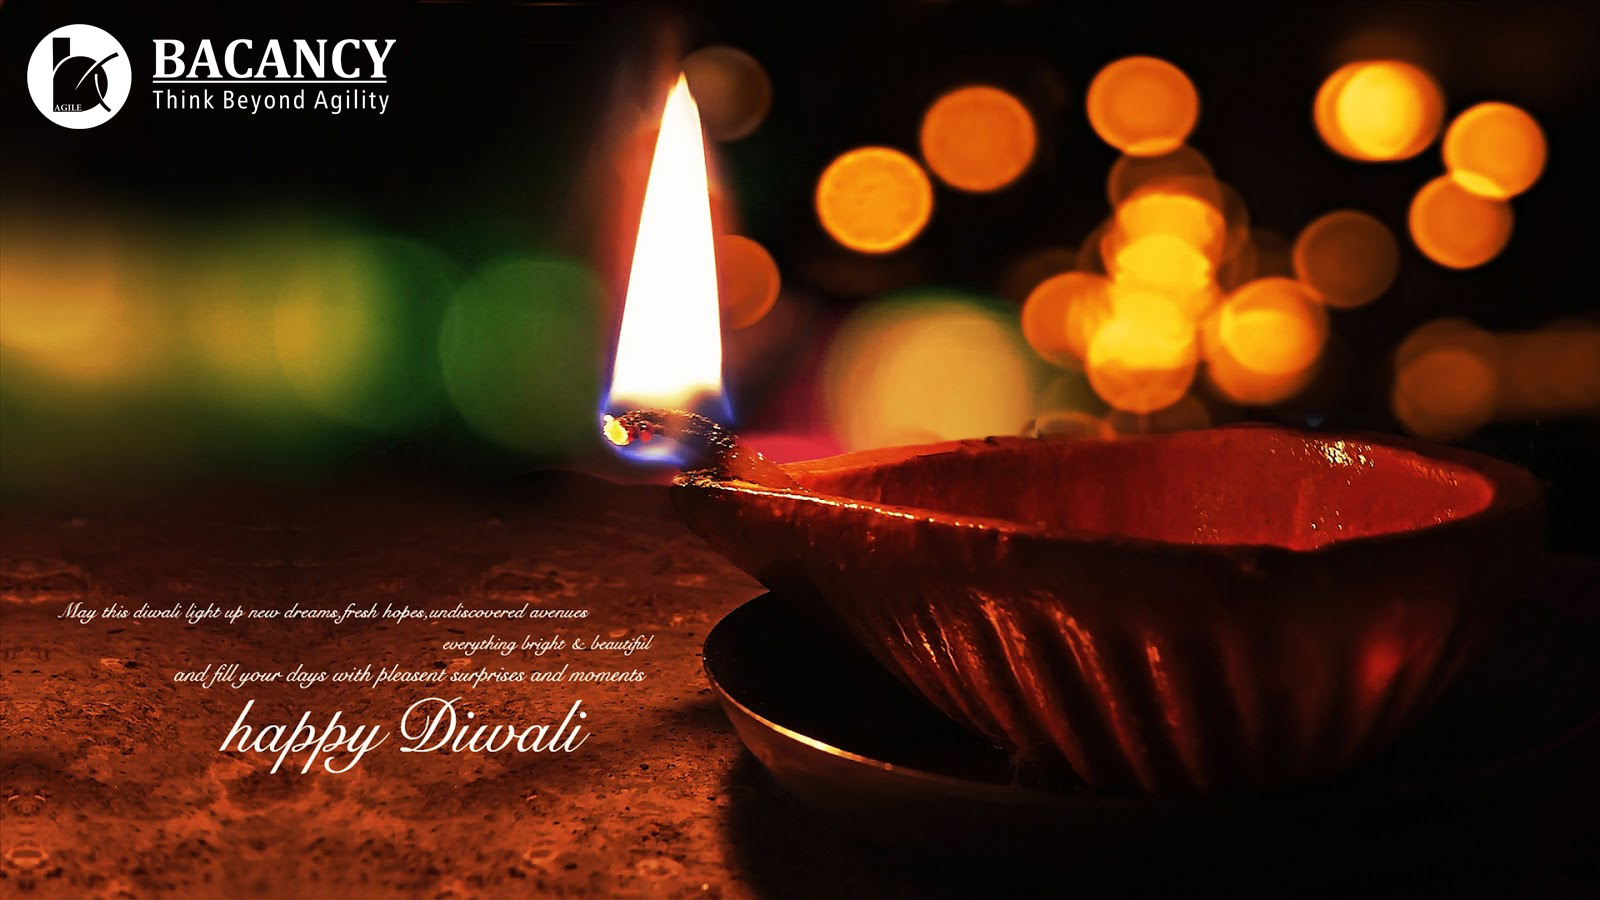 Happy Diwali From Bacancy Technology